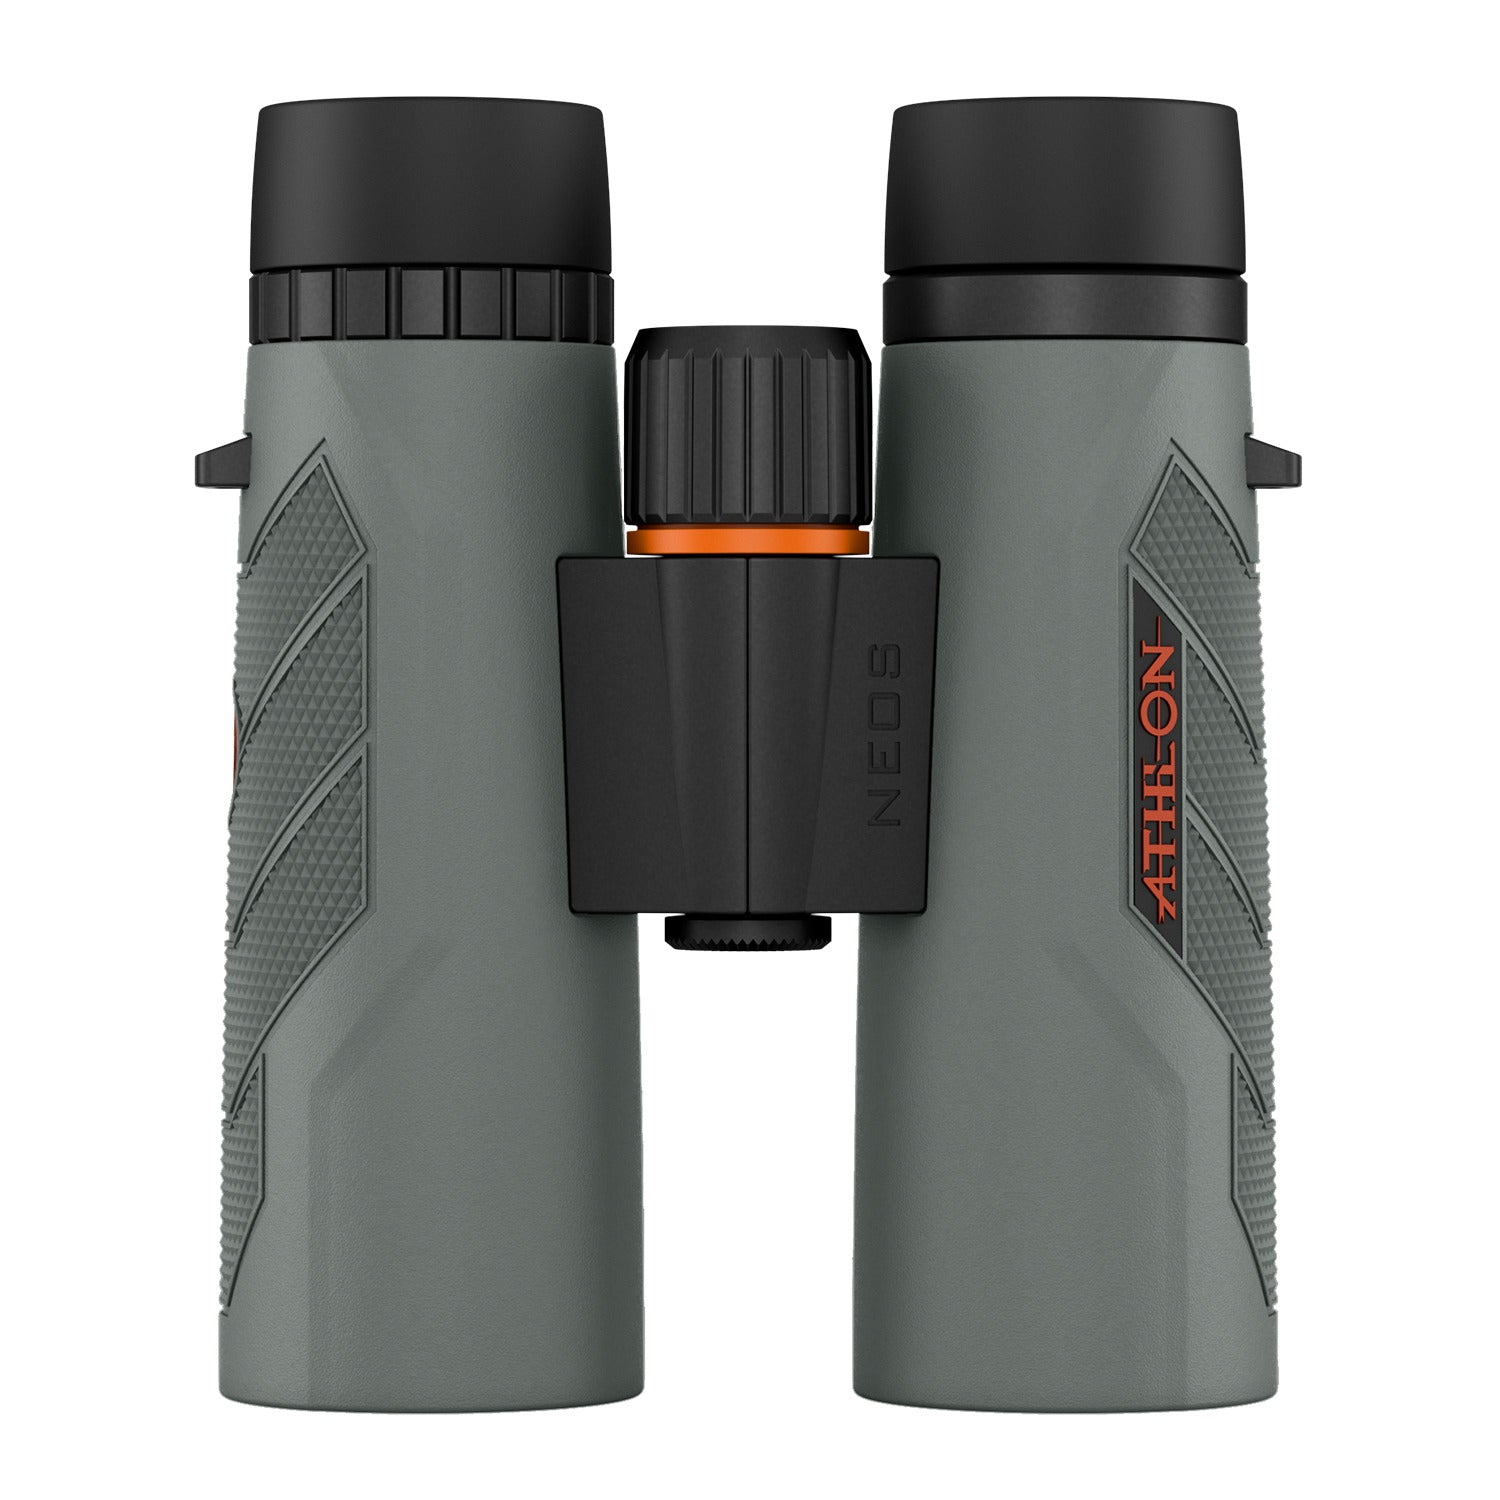 Athlon Neos G2 8x42mm HD Binoculars